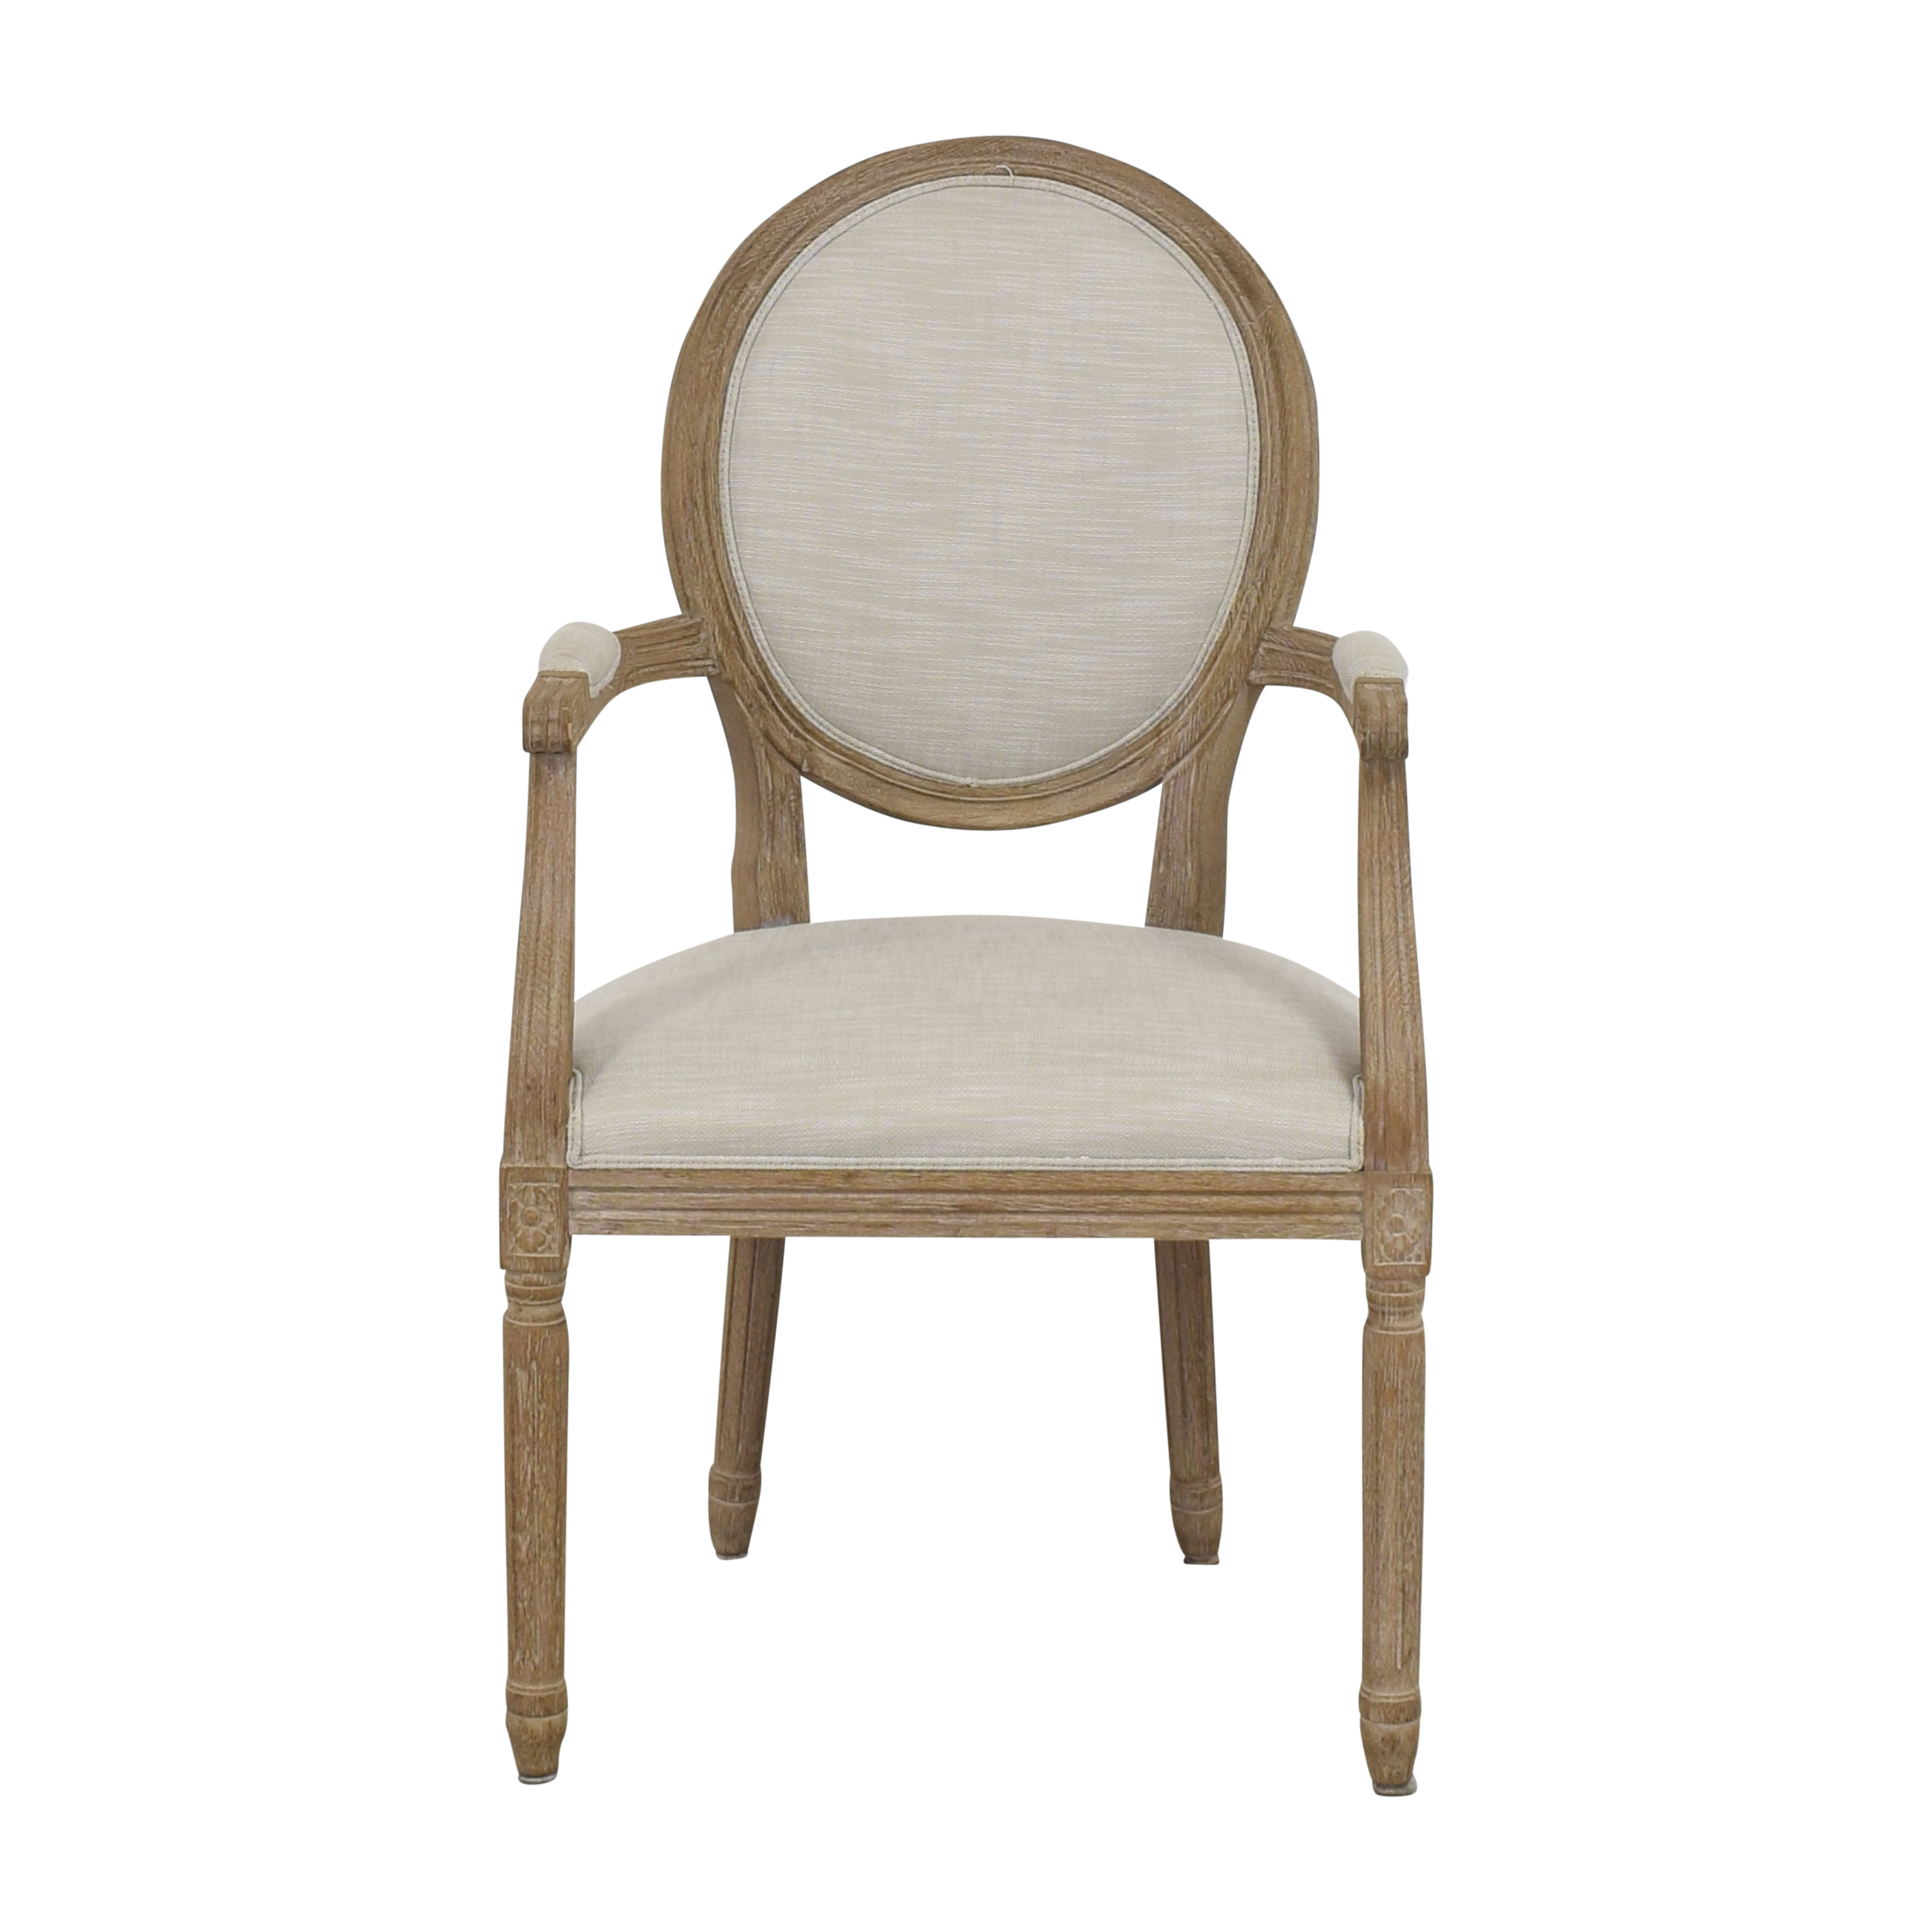 Restoration Hardware Vintage French Round Armchair / Dining Chairs